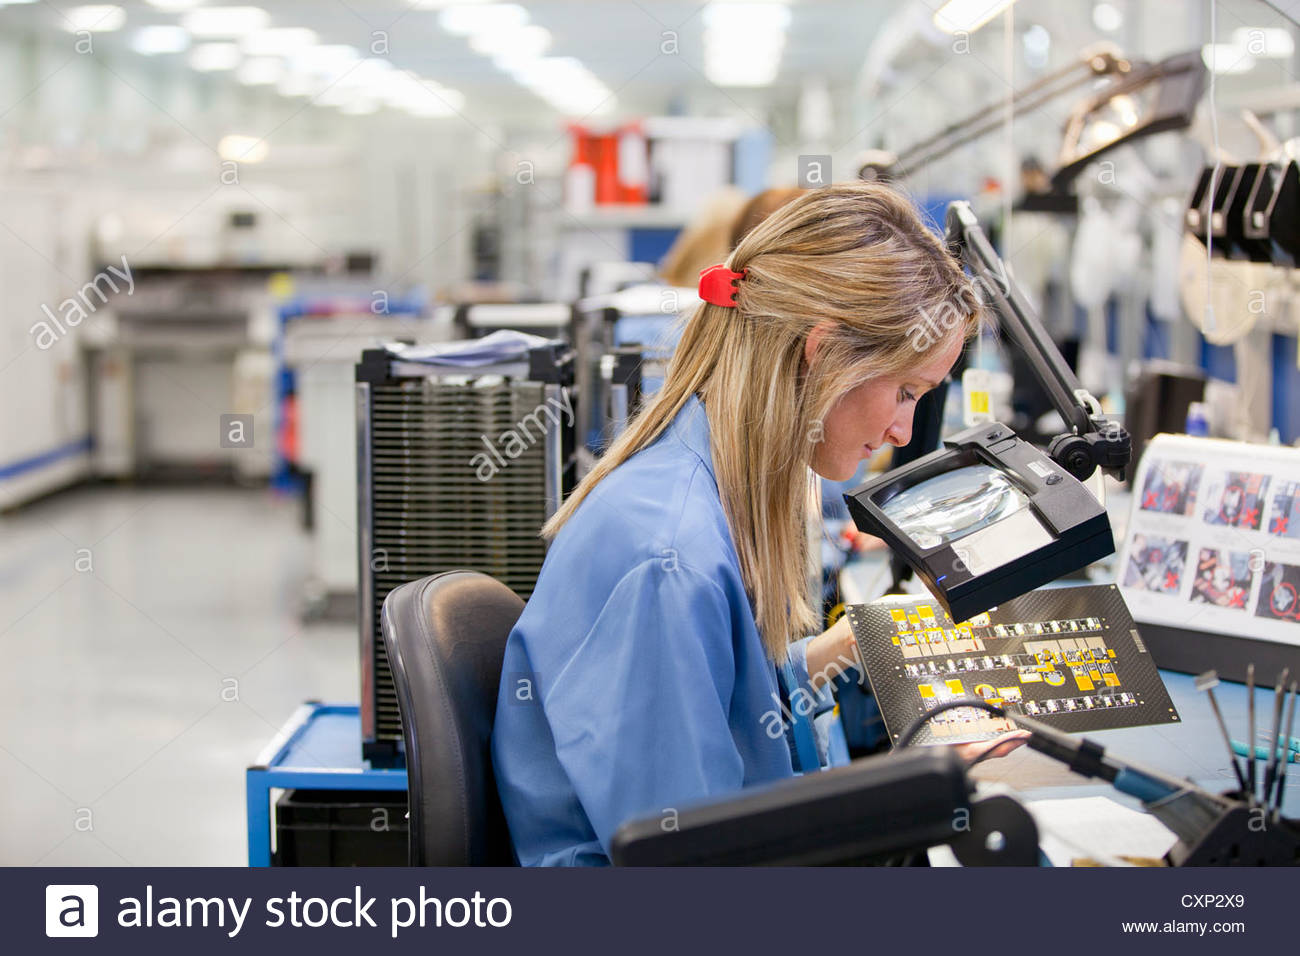 Printed Circuit Board Production Stock Photos Boardpcb Mass Product On Technician Examining In Hi Tech Electronics Manufacturing Plant Image